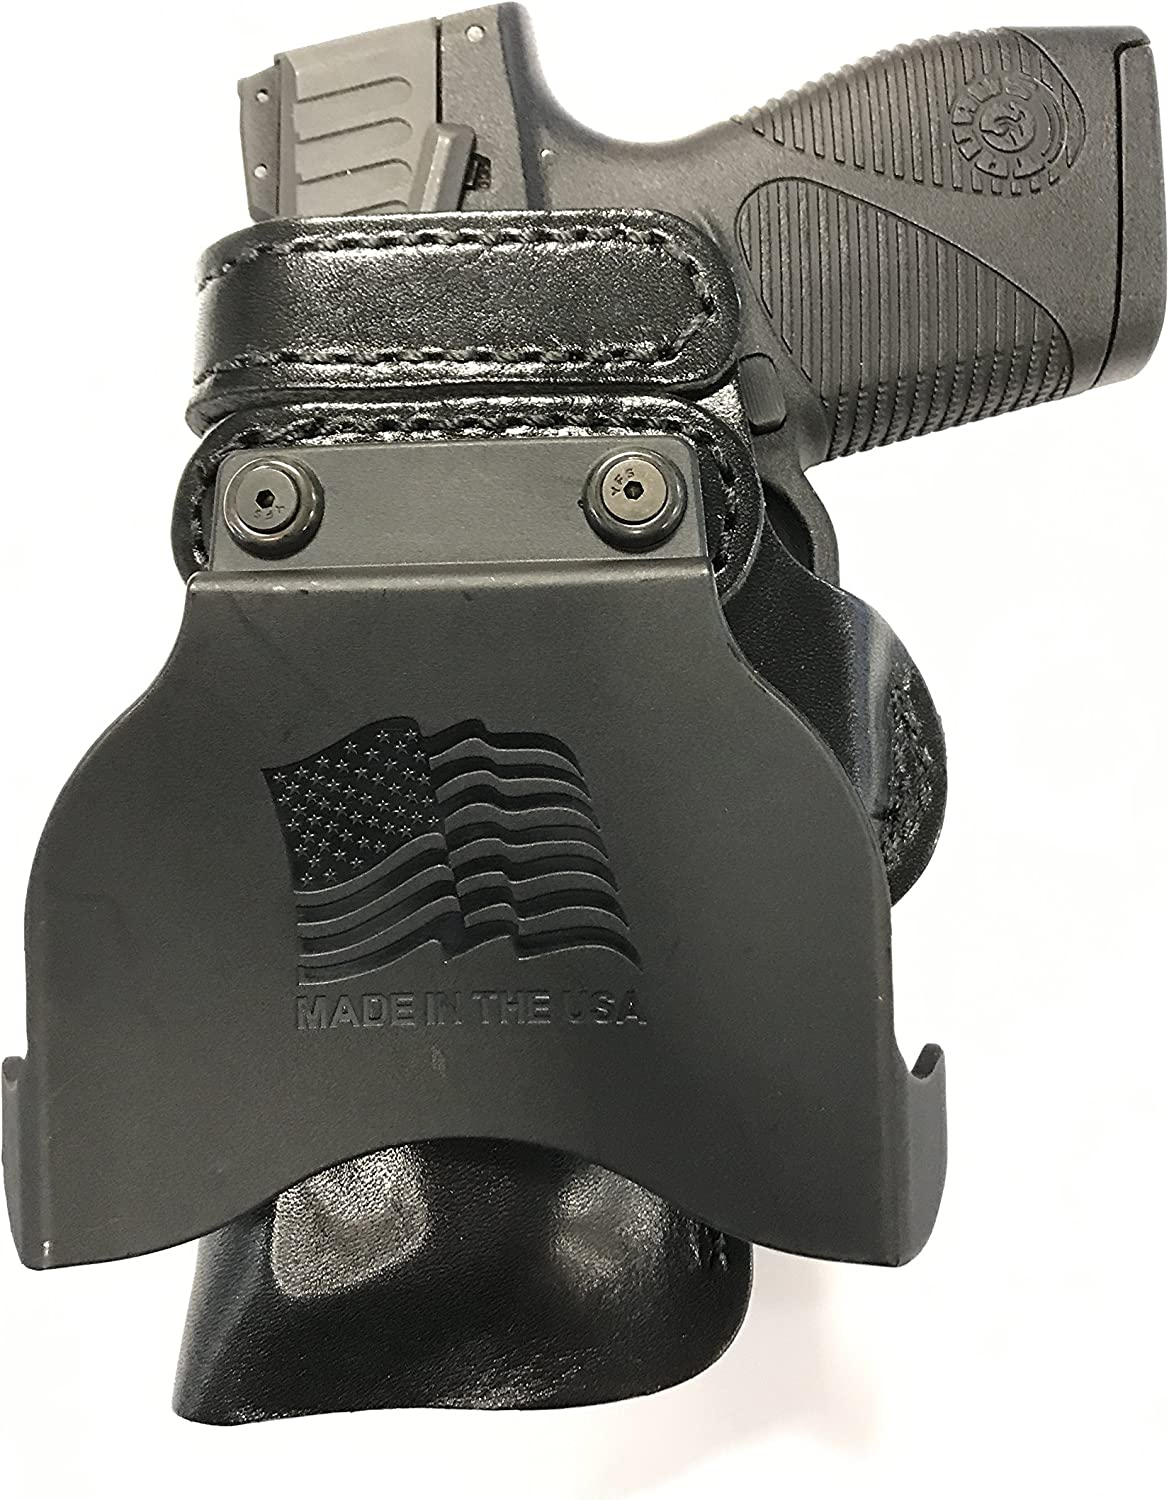 Overseas Max 71% OFF parallel import regular item Paddle Holster For Colt Officer RH Black Right Concealed Hand Ca